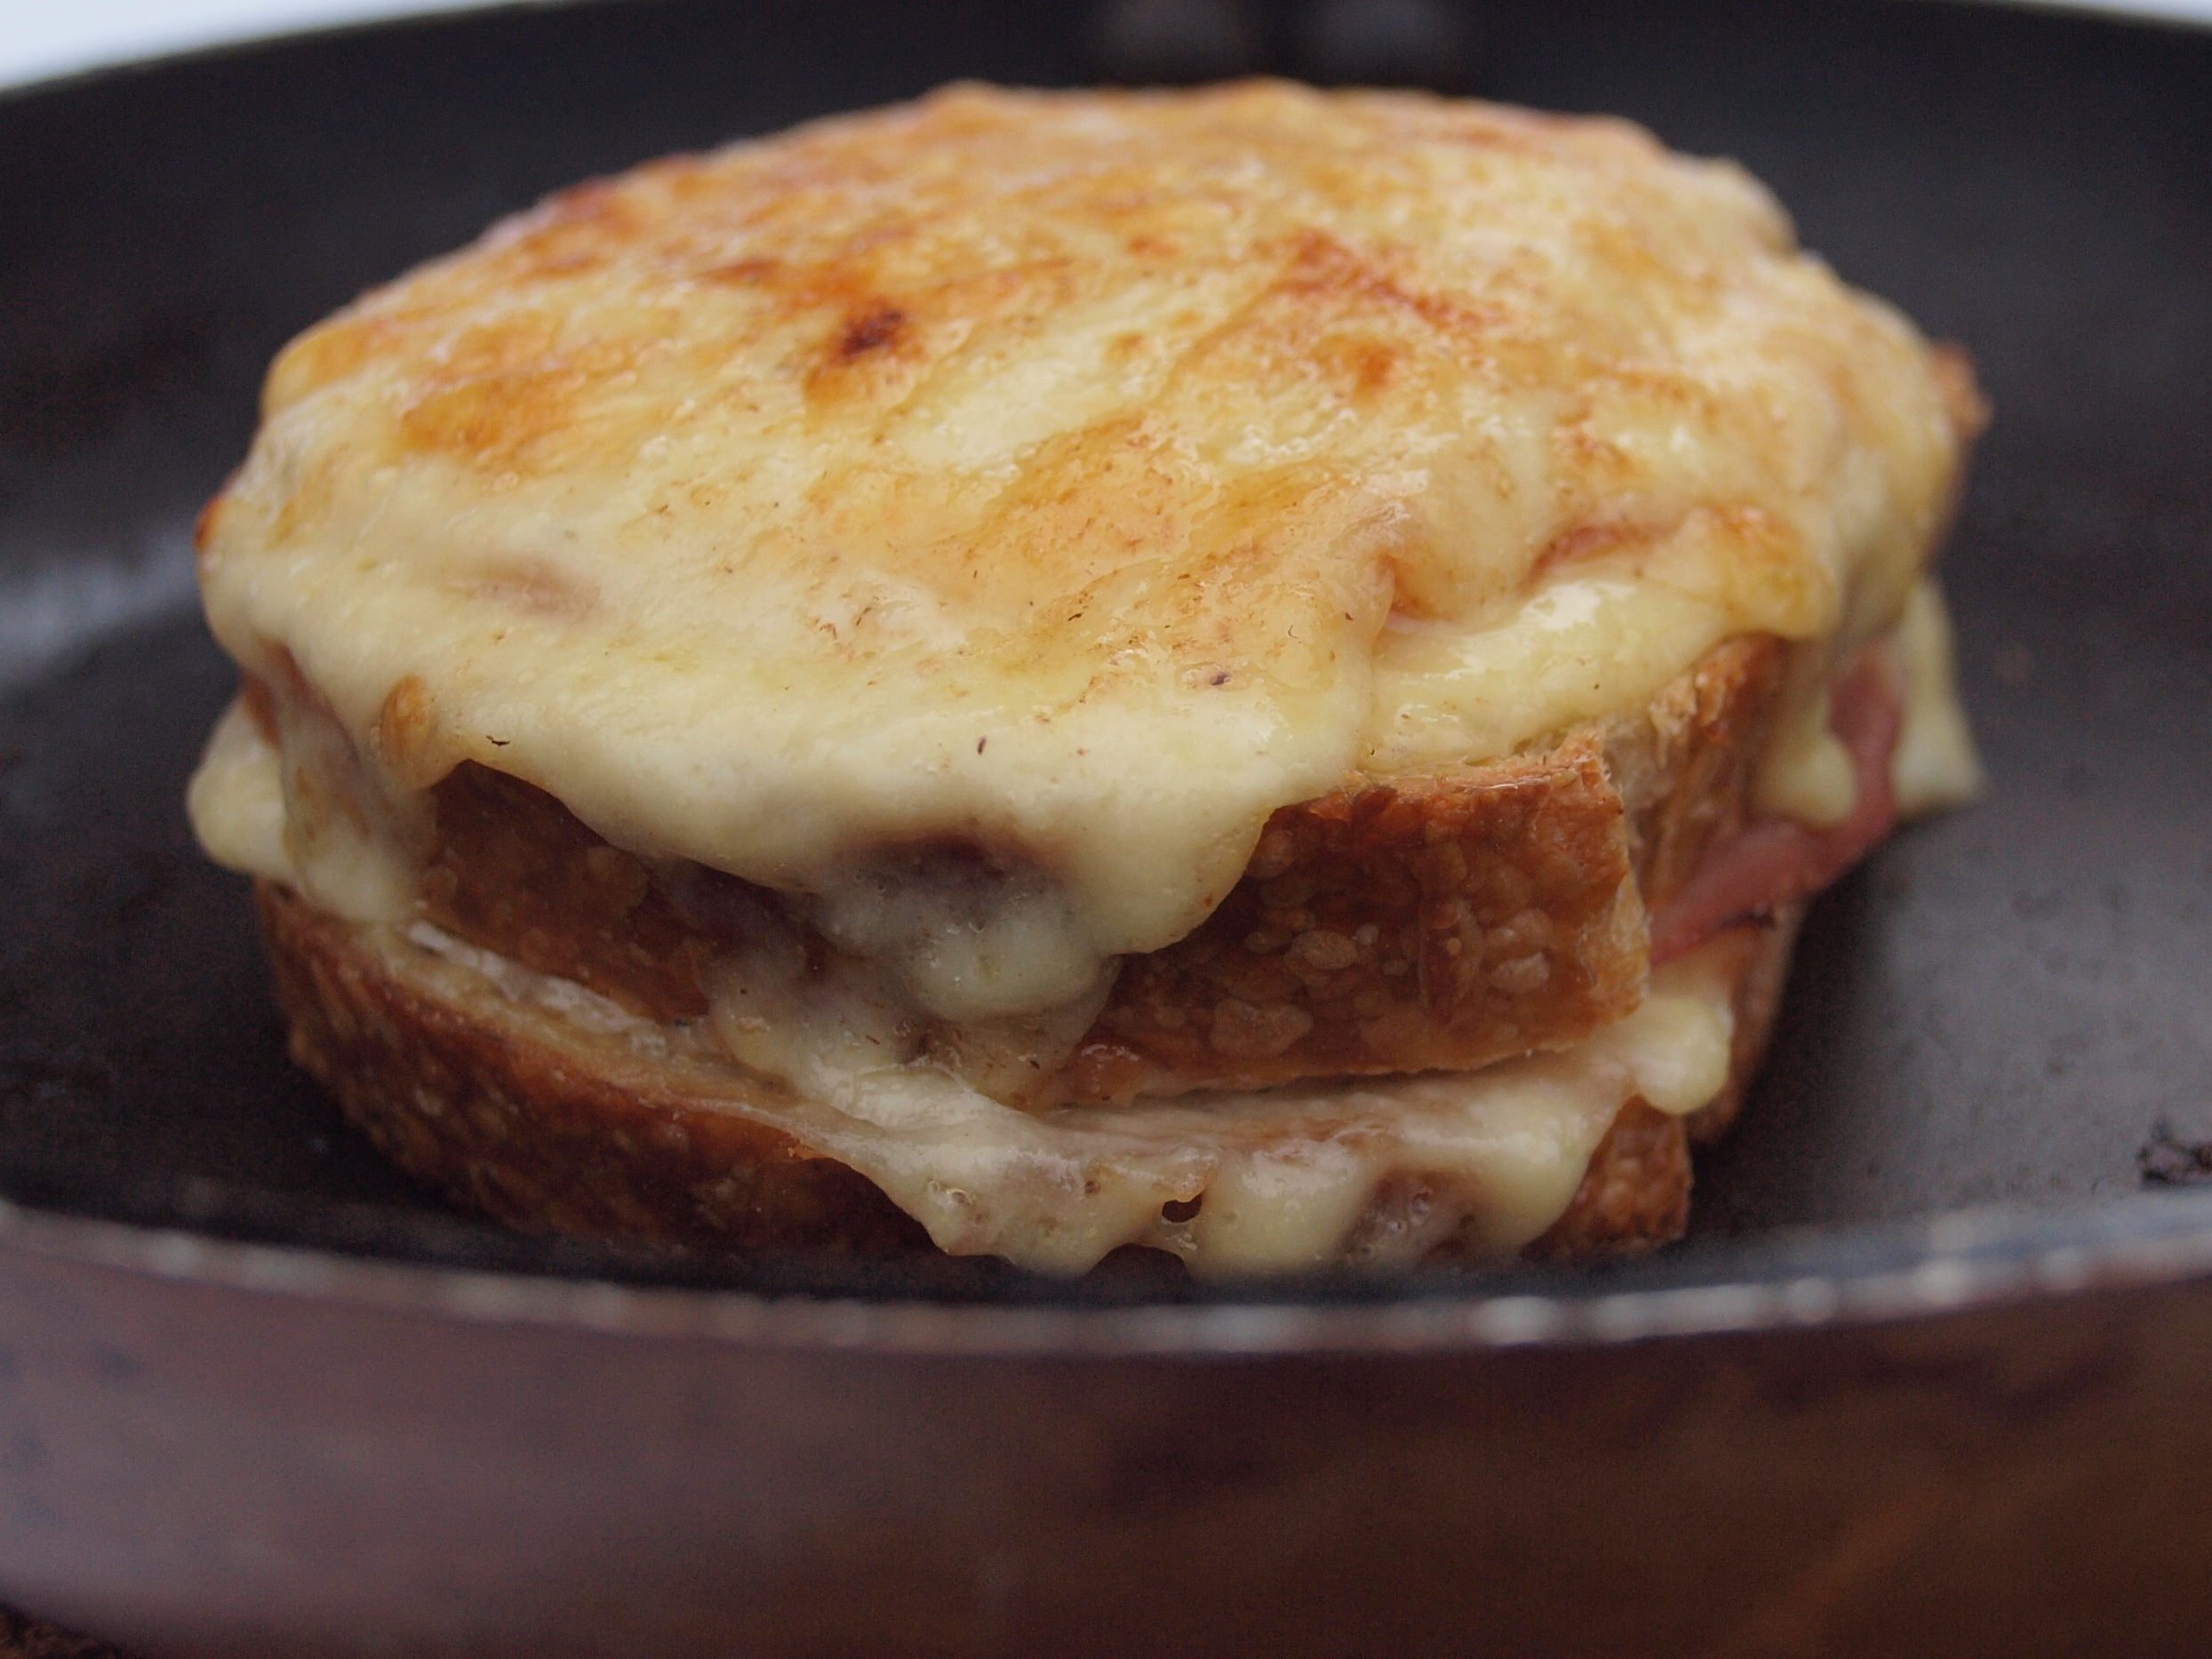 ... croque monsieur top jpg croque monsieur jpg croque monsieur croque